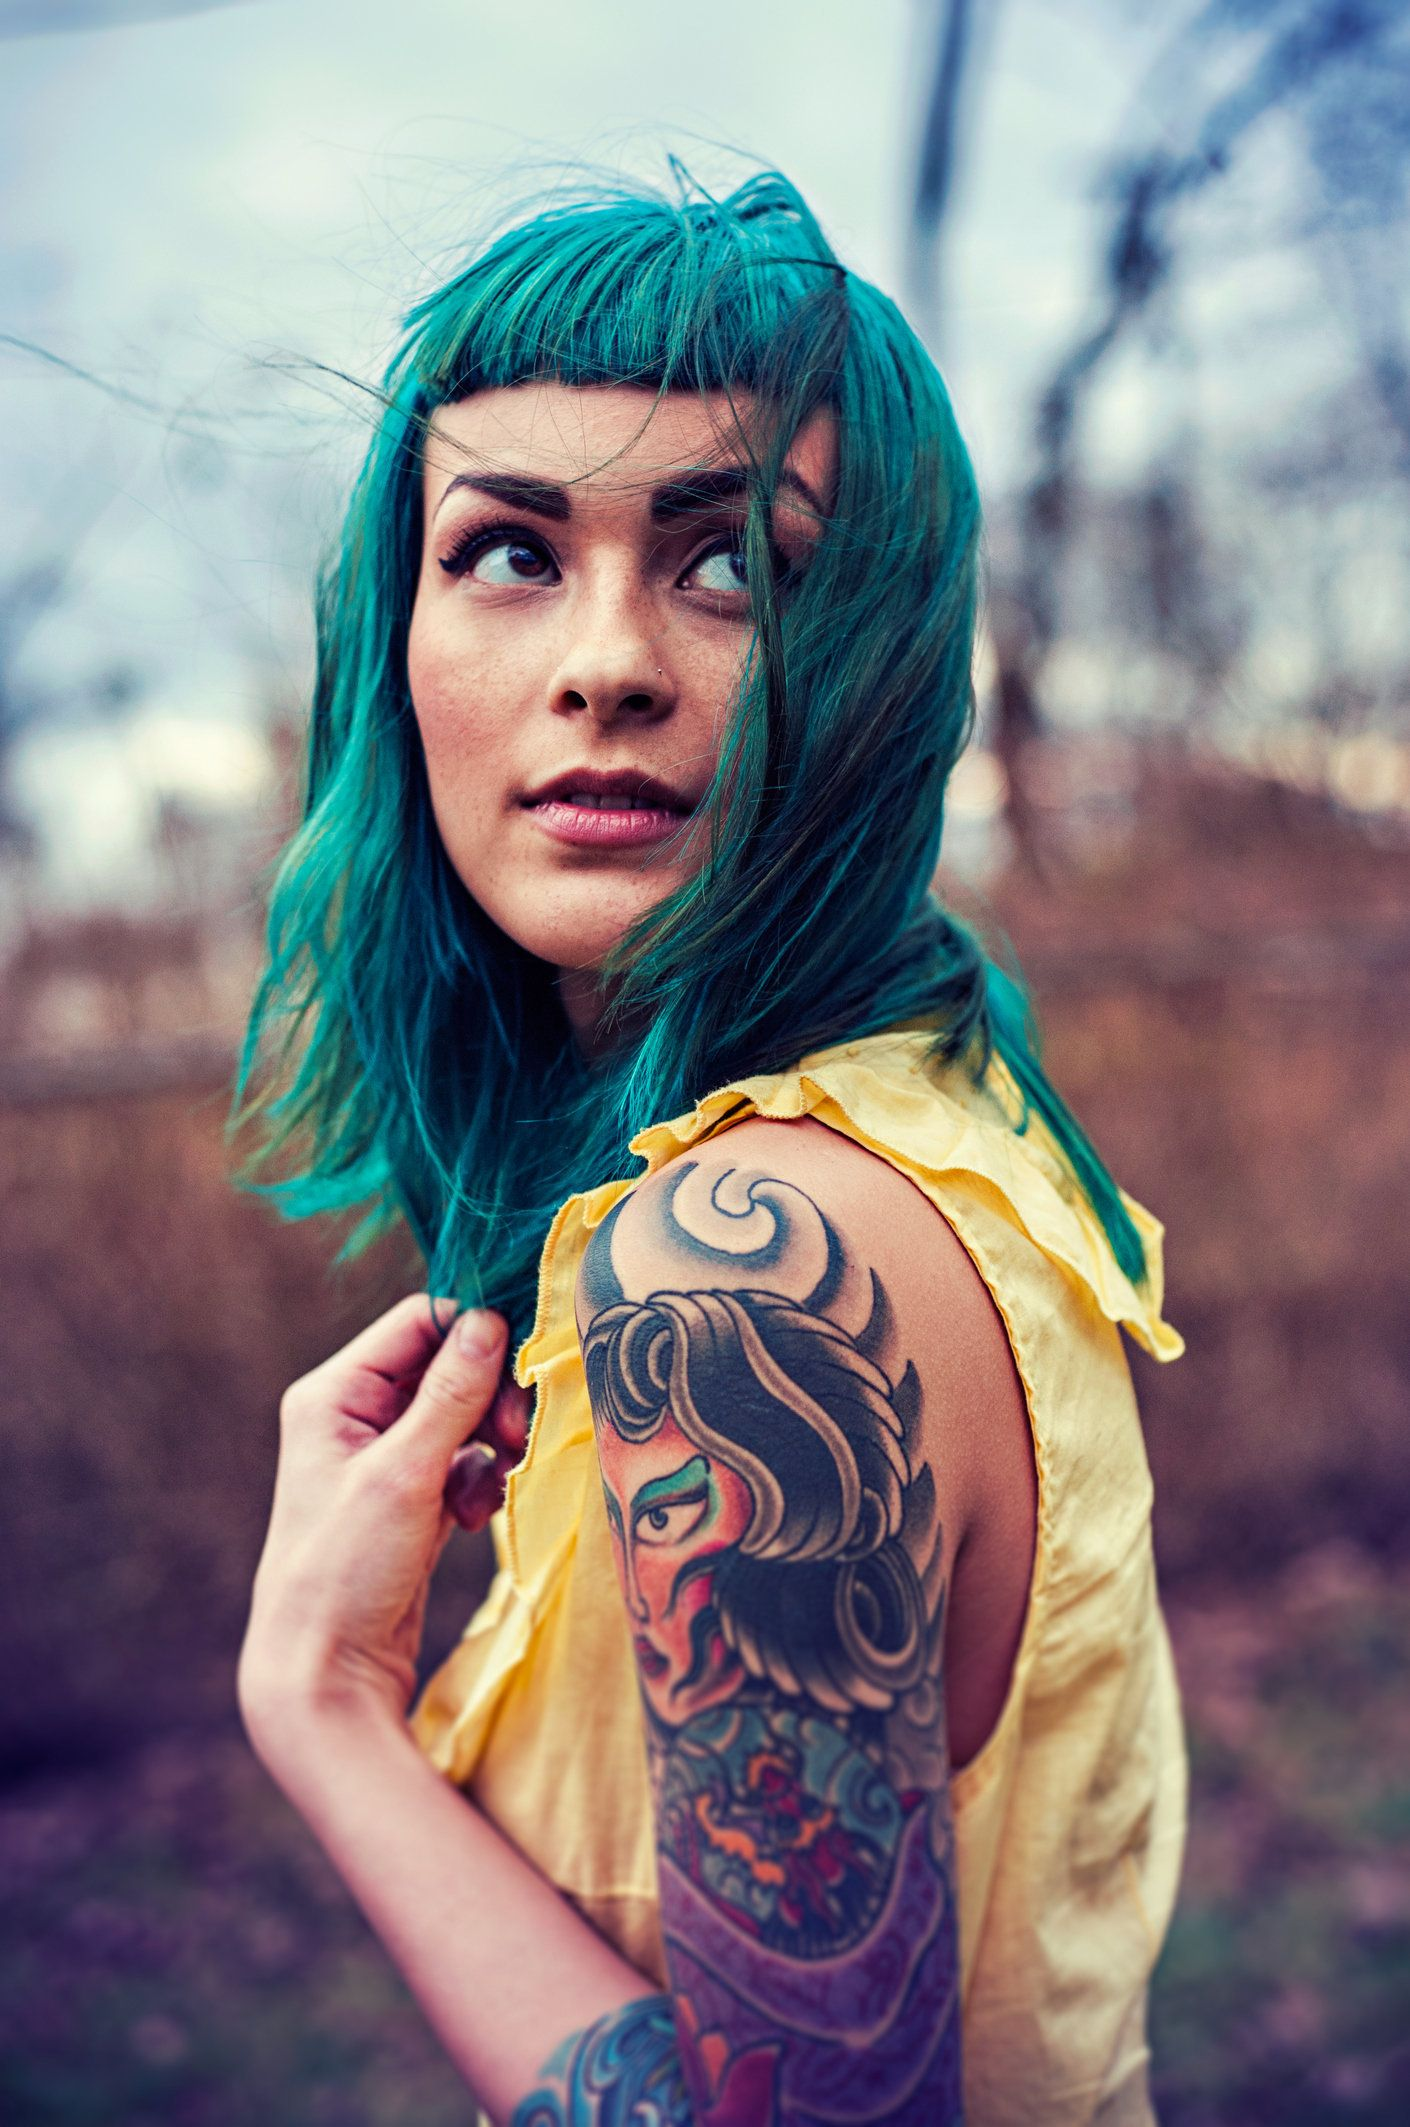 Portrait of young woman with blue hair and tattoos looking up over her shoulder.